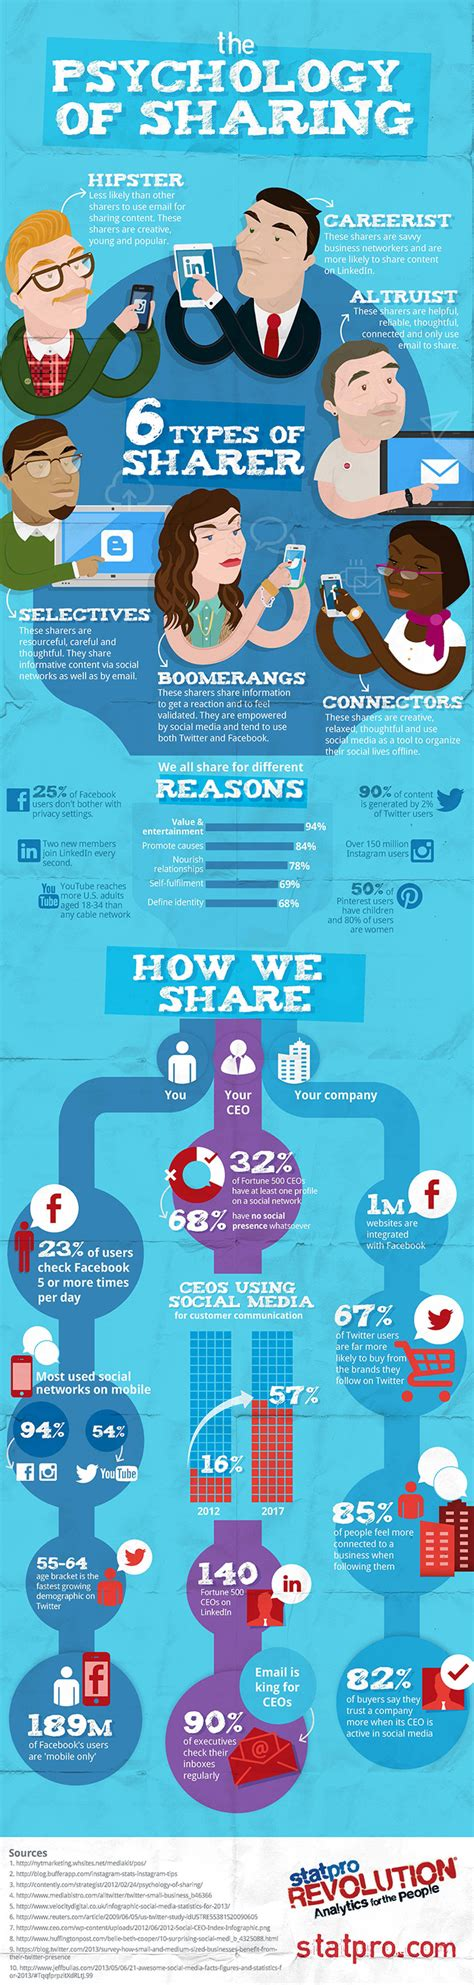 infographic the psychology of graphics bigstock blog the psychology of sharing infographic statpro group